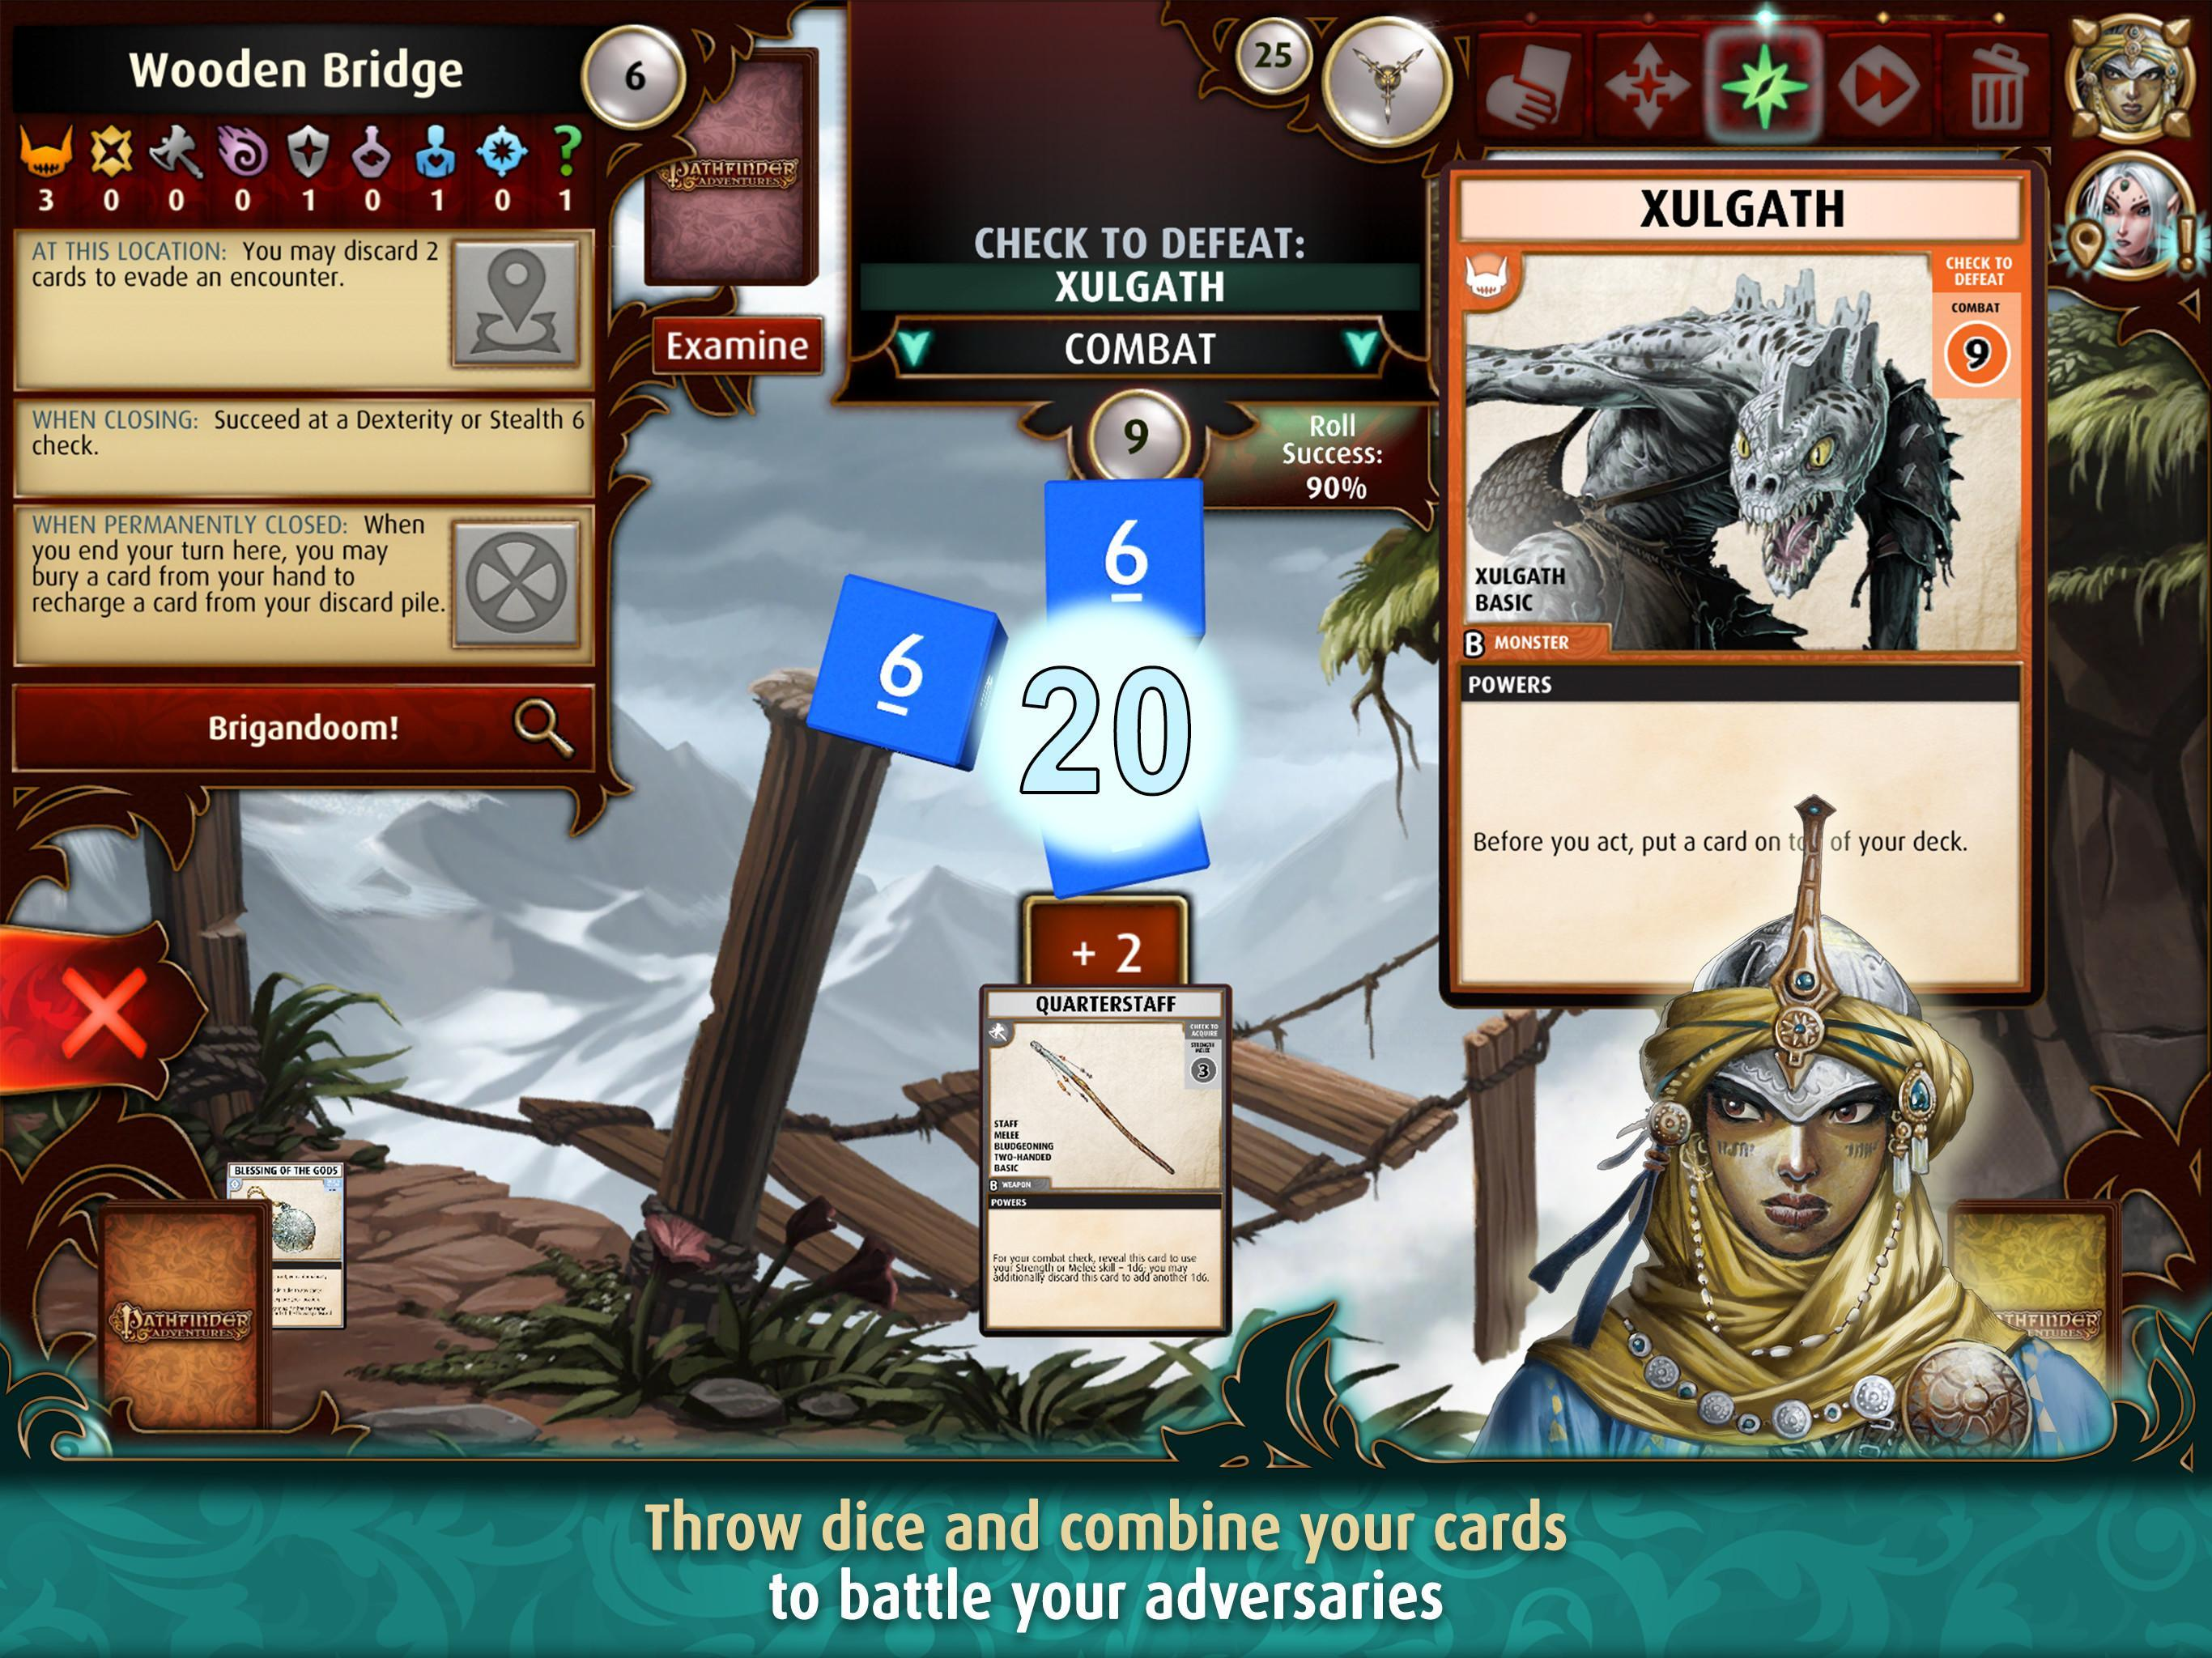 Pathfinder Adventures for Android - APK Download